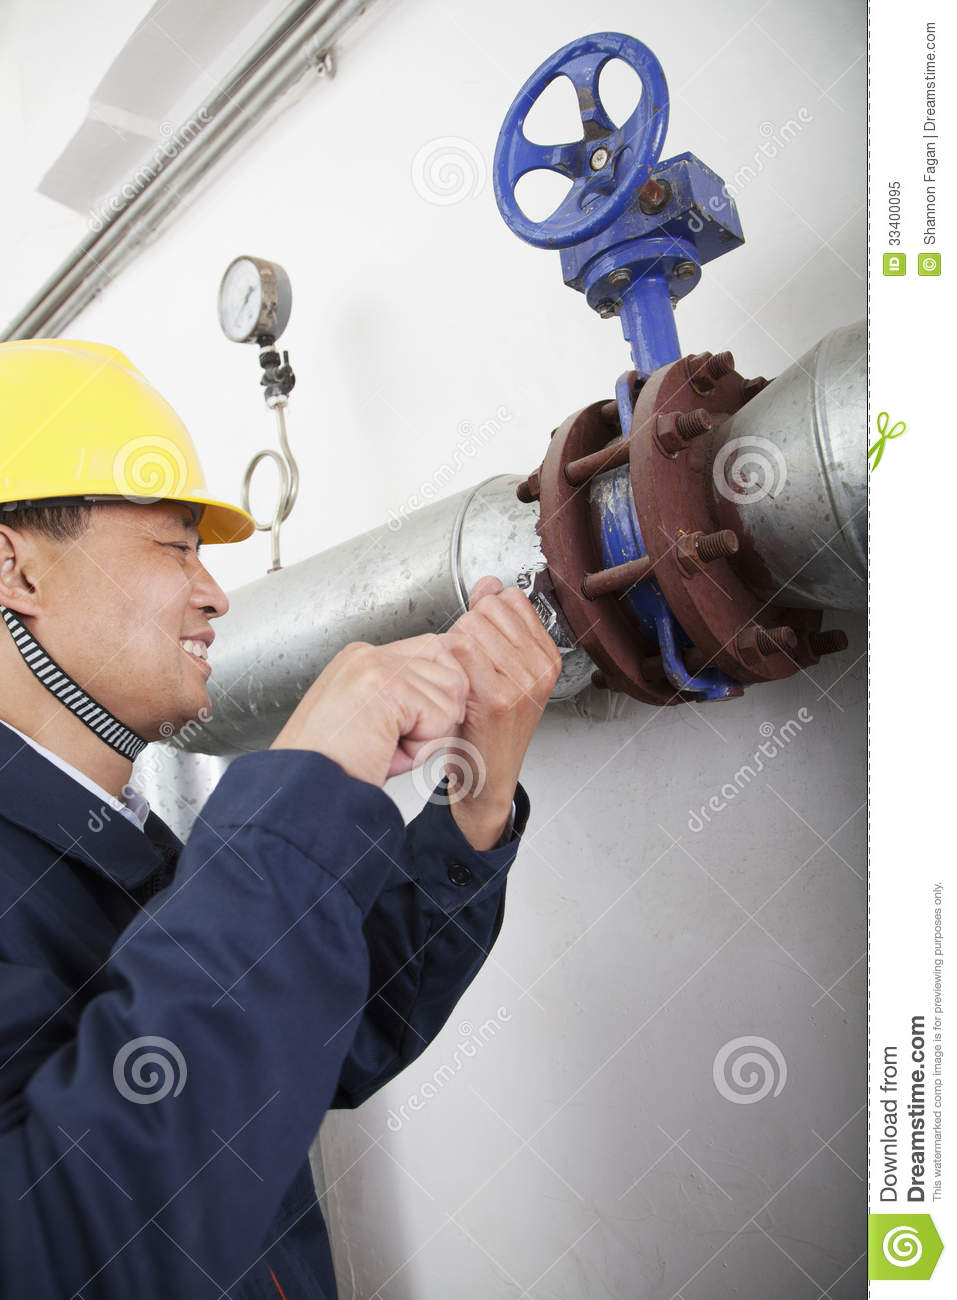 Smiling worker checking the oil pipeline equipment in a gas plant, Beijing, China